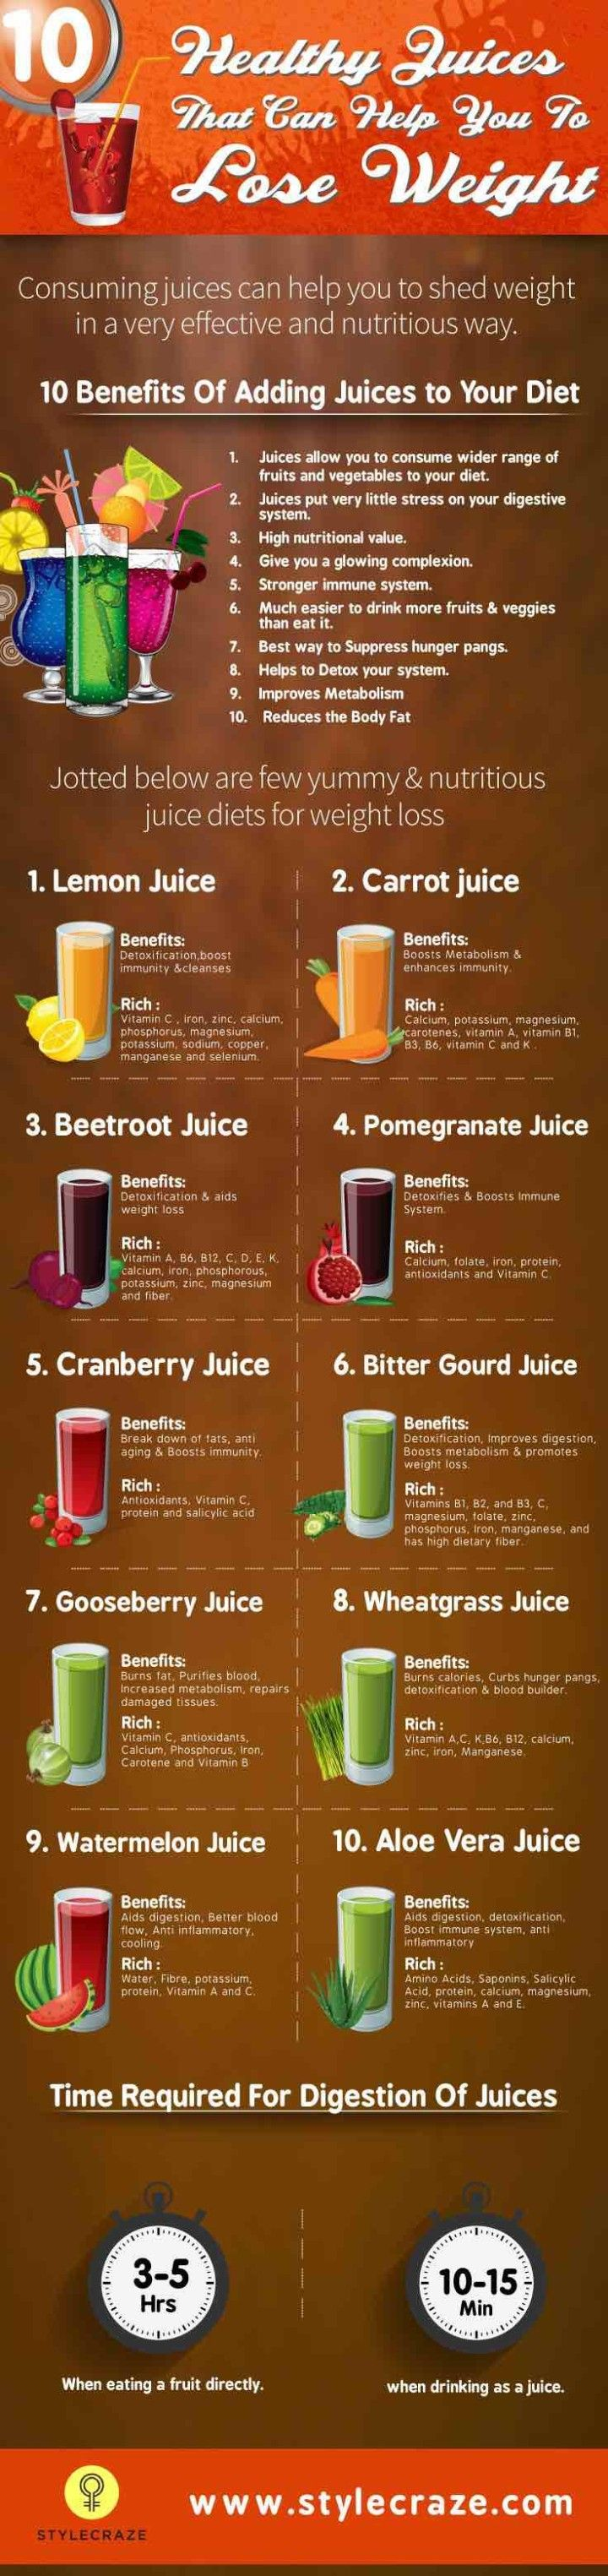 10 Juicing recipes to detox your body and lose weight. via stylecraze